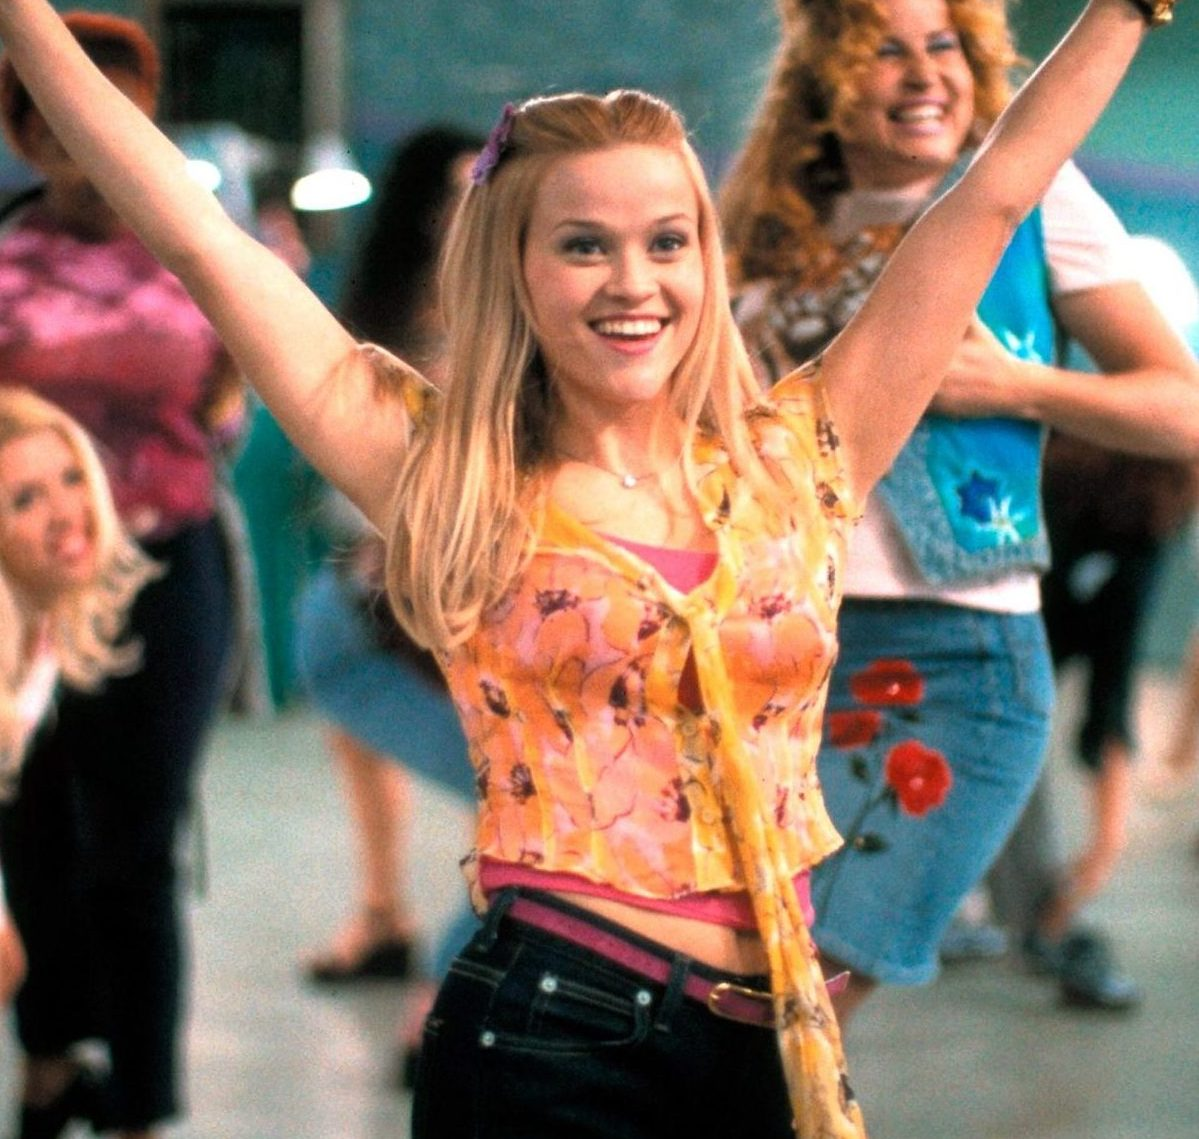 legallyblonde 2001 rwitherspoon2 2000 e1597744929897 20 Great Movie Romances That Are Actually Deeply Problematic